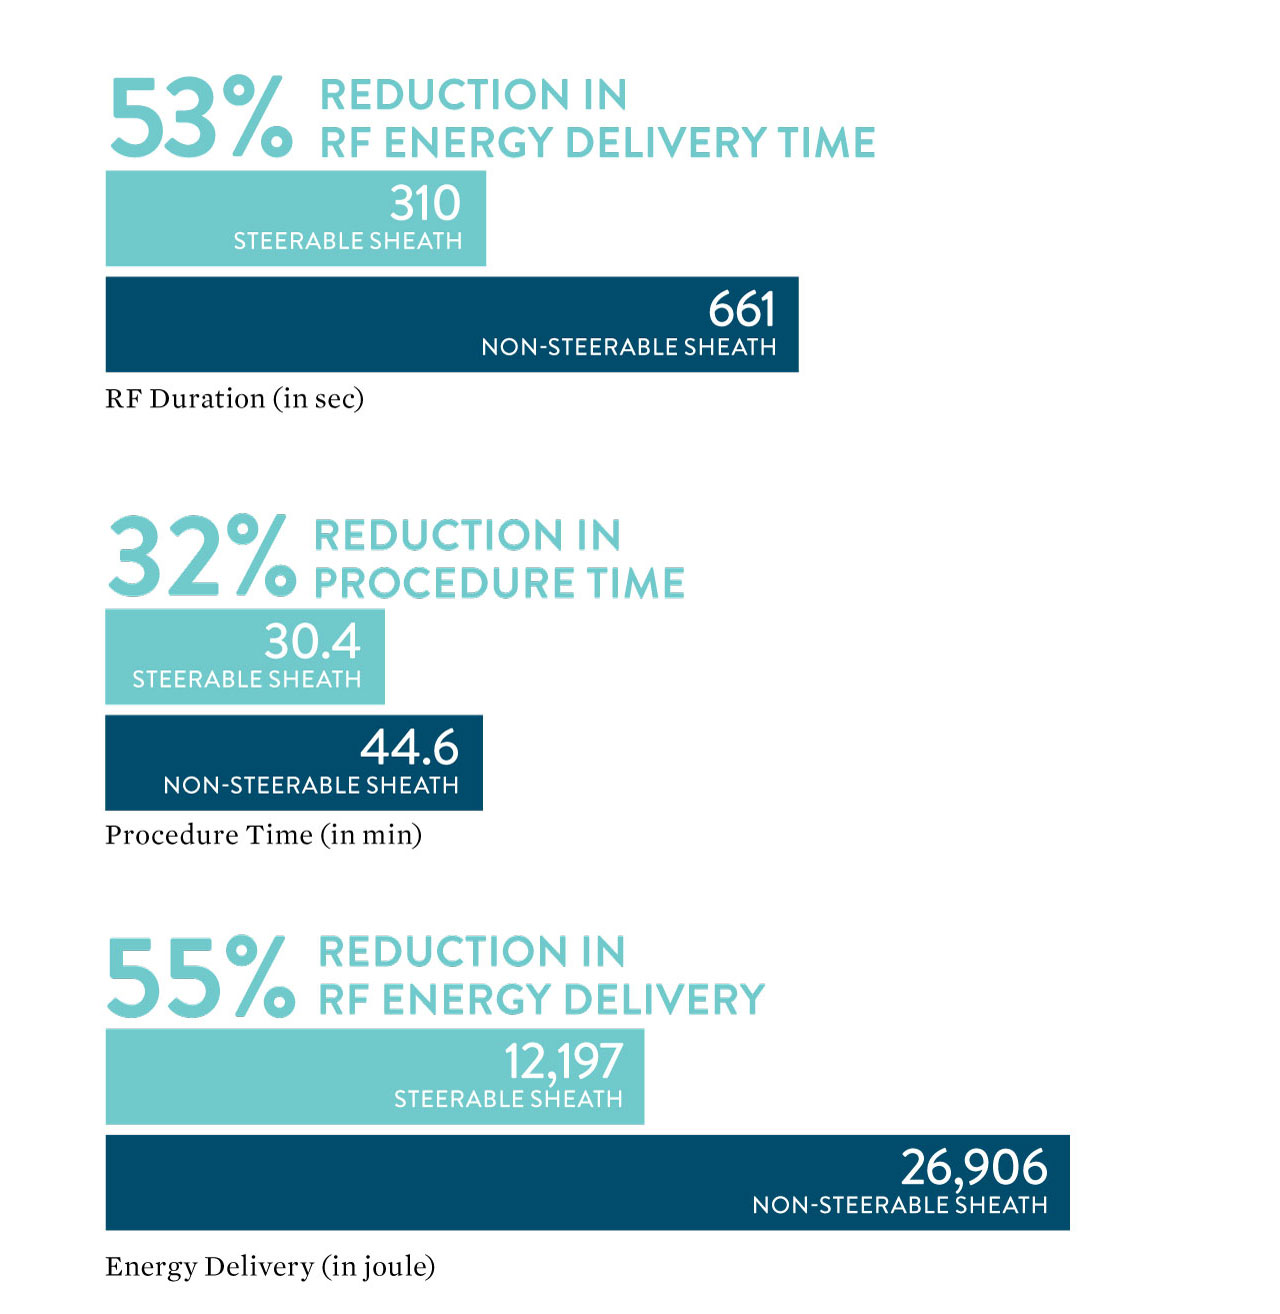 53% reduction in RF energy delivery; 32% reduction in procedure time; 55% reduction in RF energy delivery